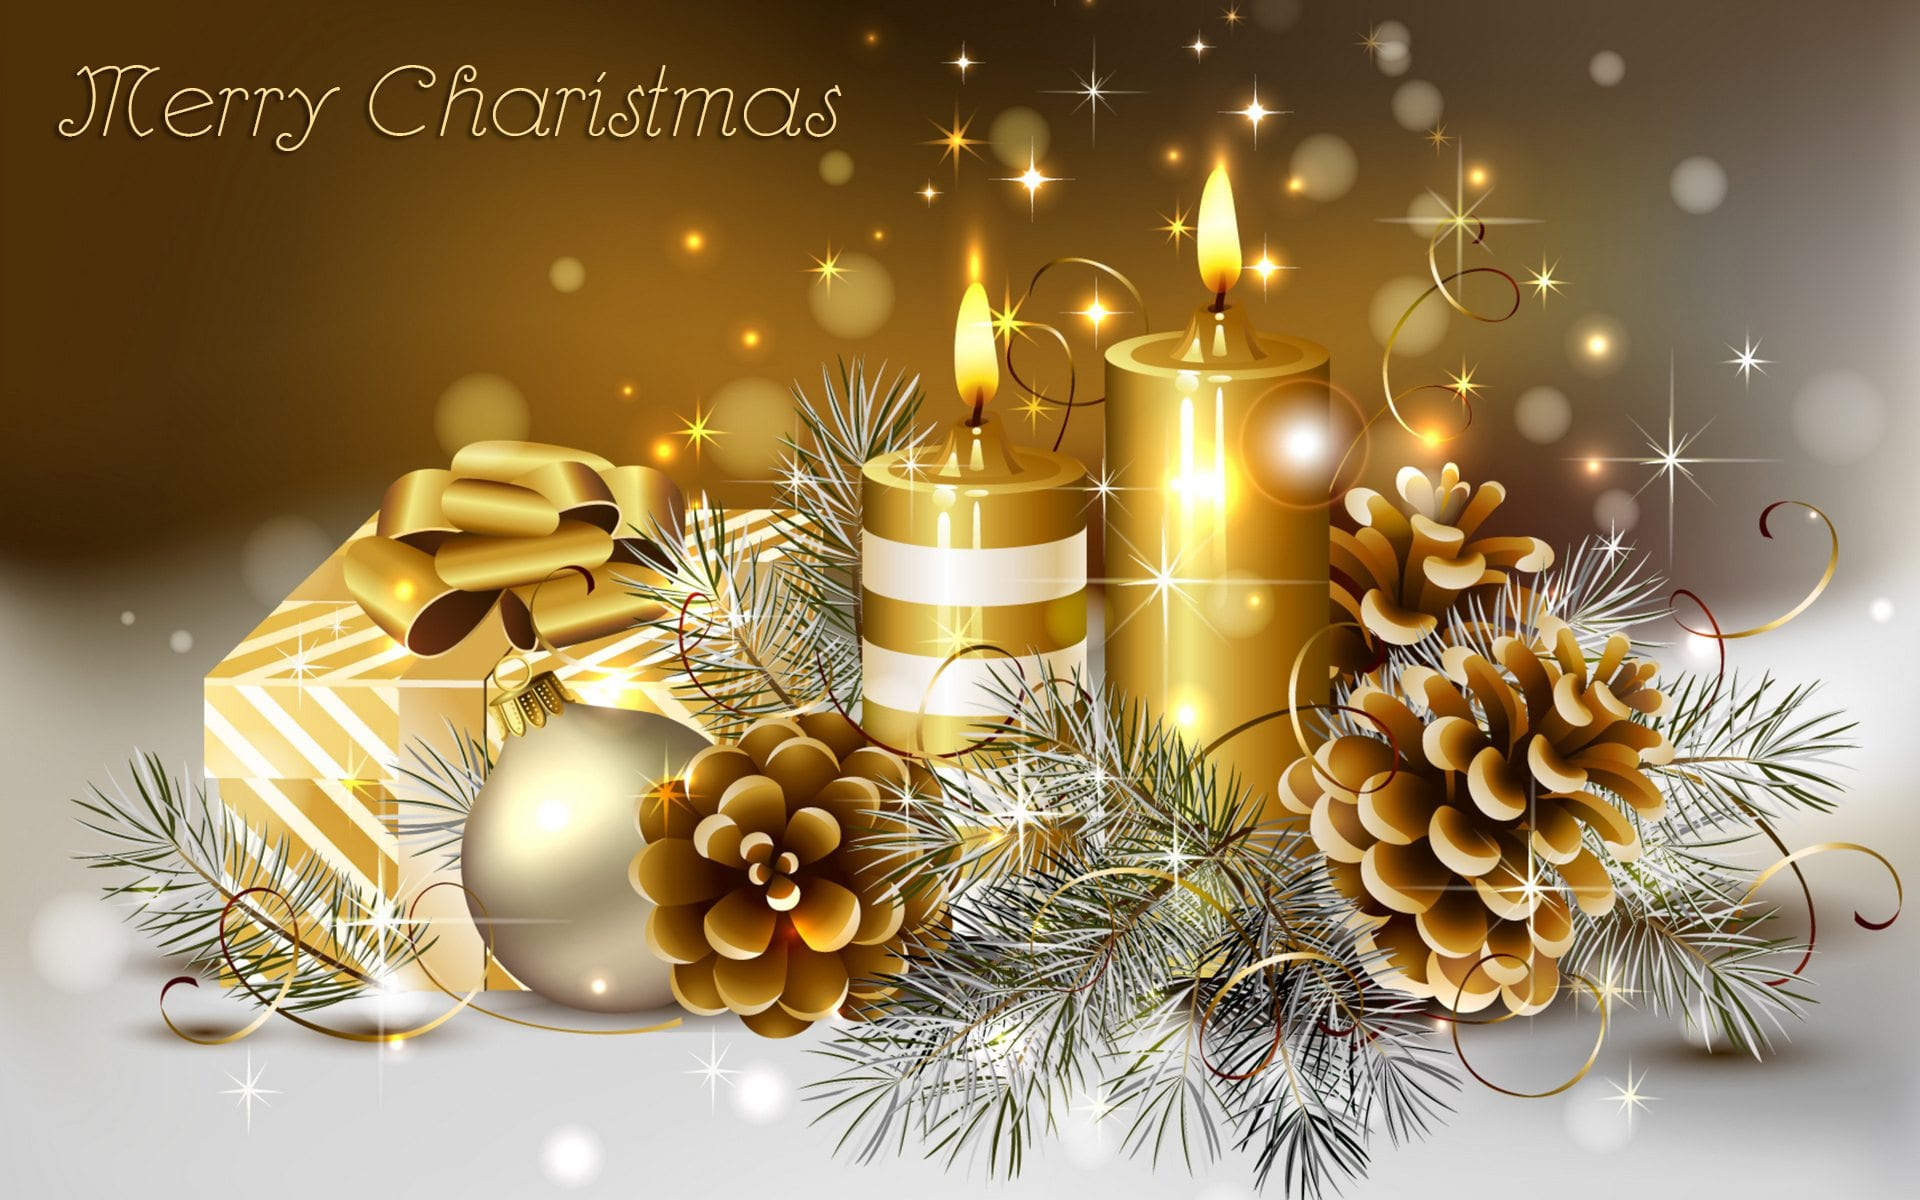 6999475-merry-christmas-full-hd-wallpapers